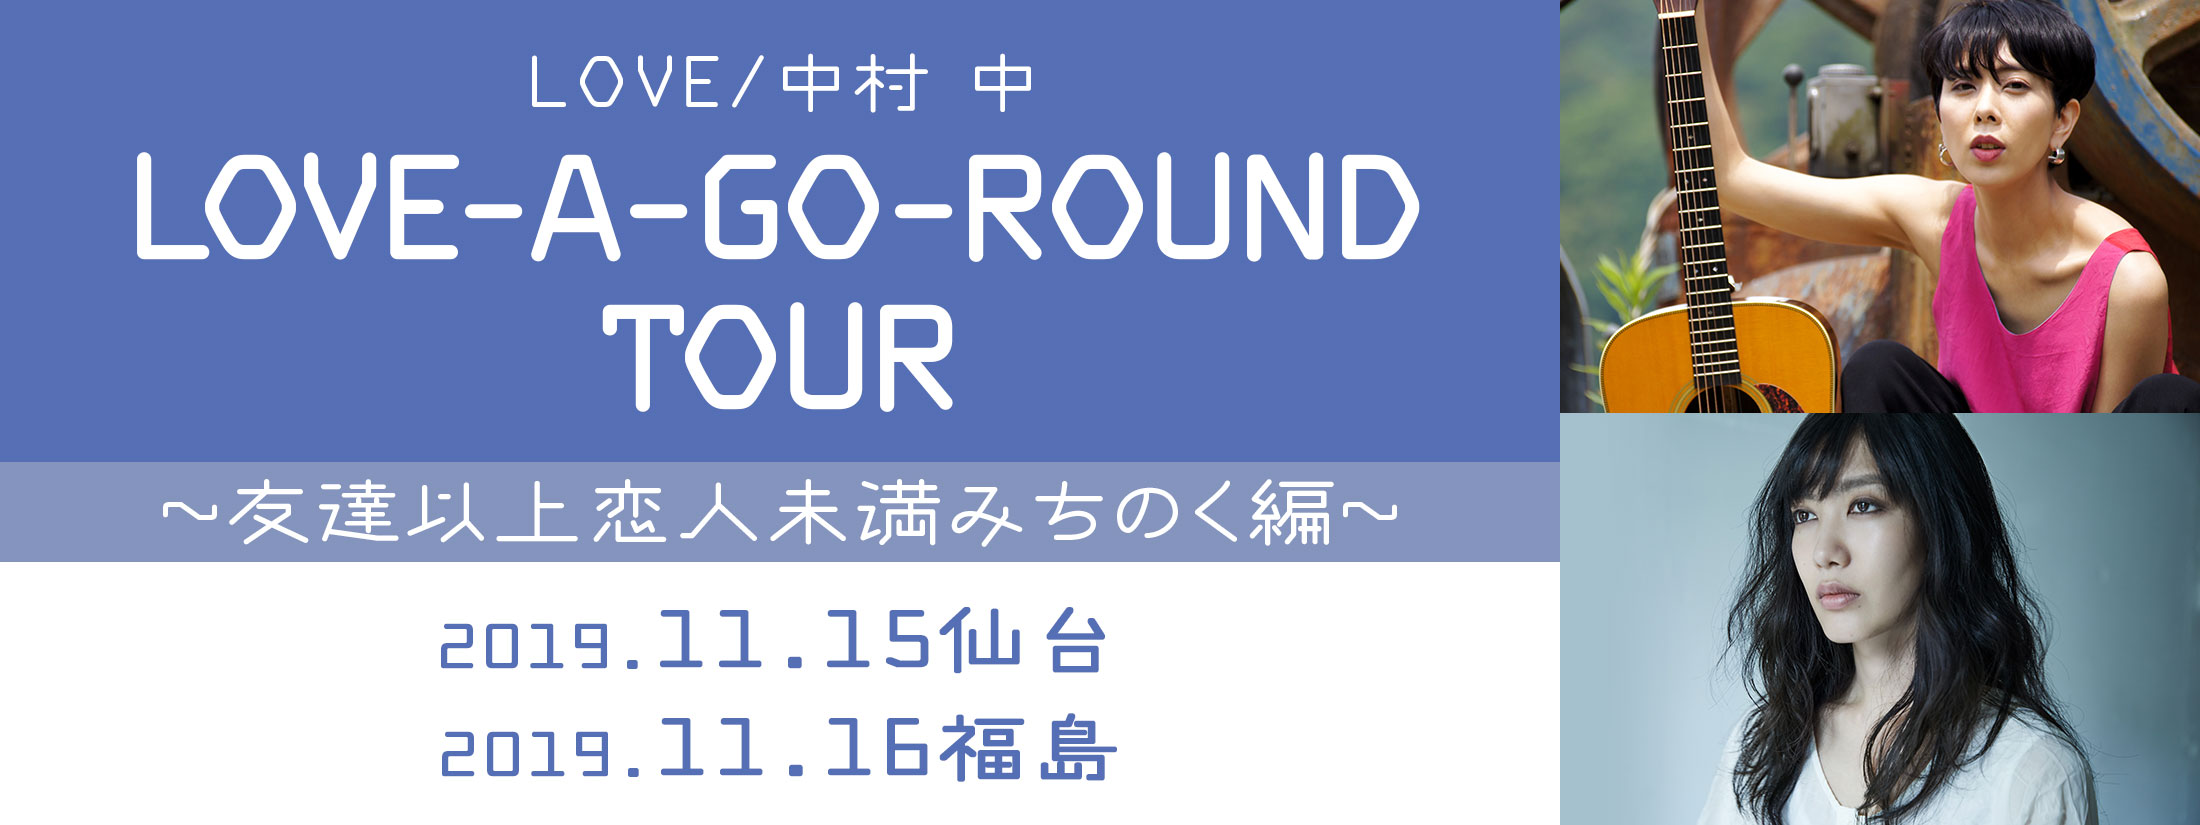 LOVE/中村 中「LOVE-A-GO-ROUND TOUR」~友達以上恋人未満みちのく編~